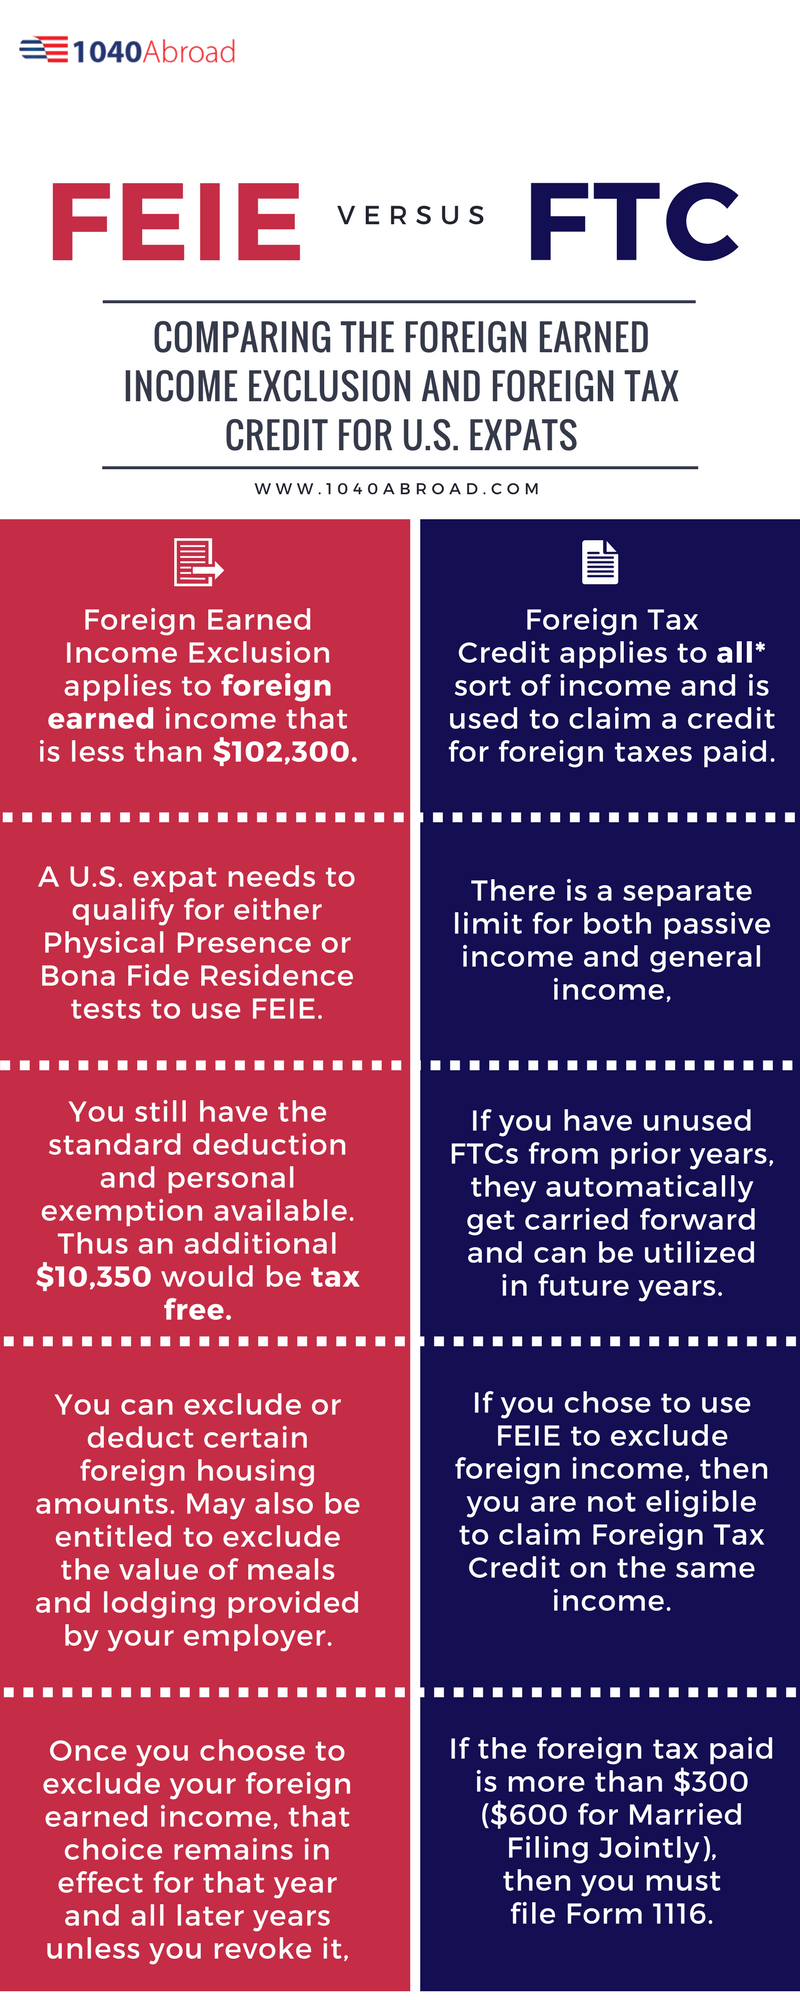 foreign earned income exclusion, foreign tax credit